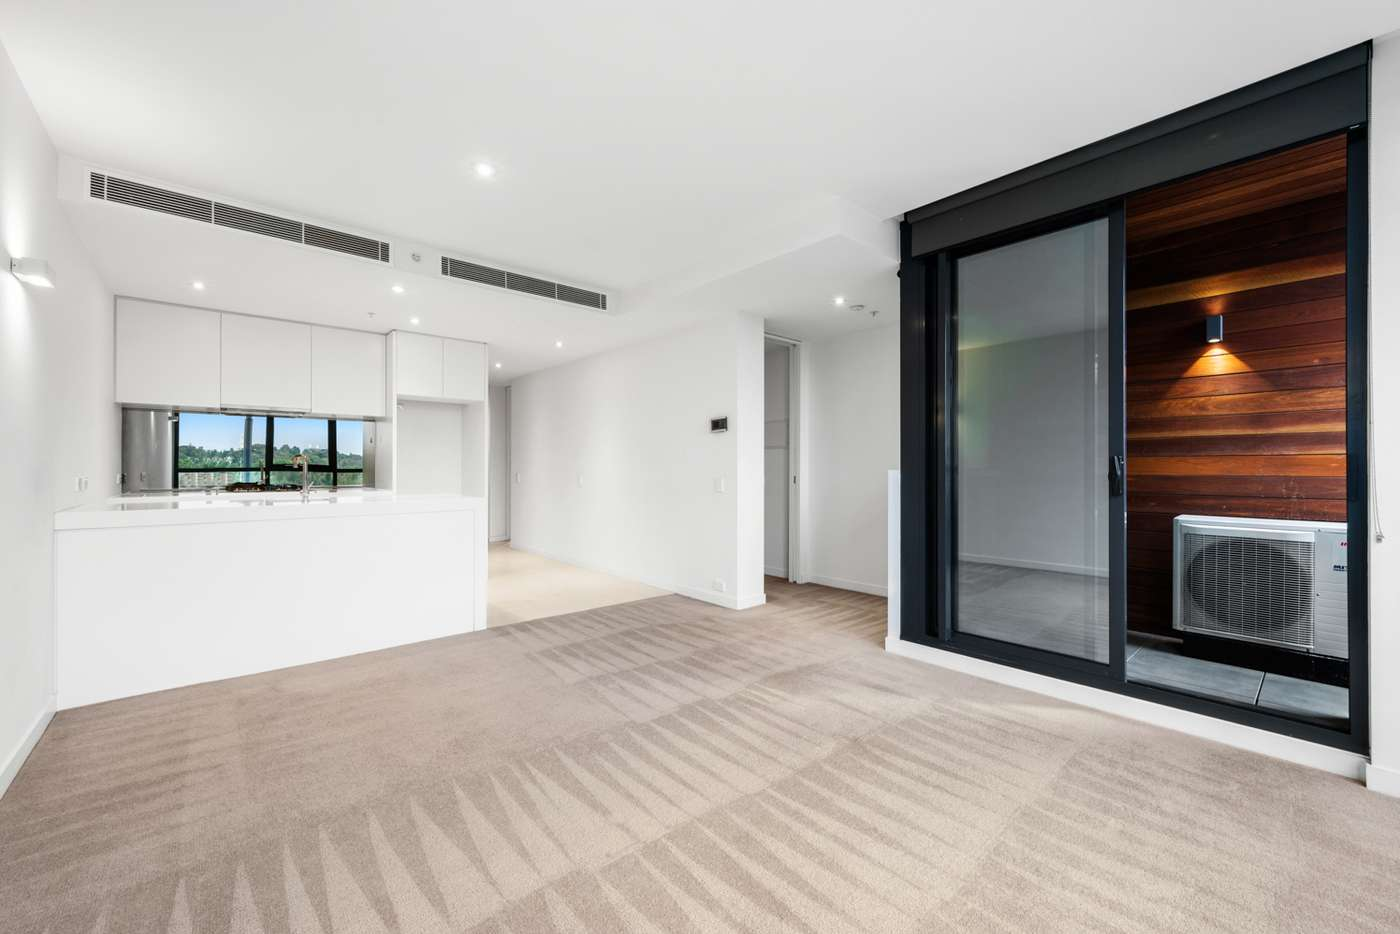 Main view of Homely apartment listing, 116/108 Flinders Street, Melbourne VIC 3000